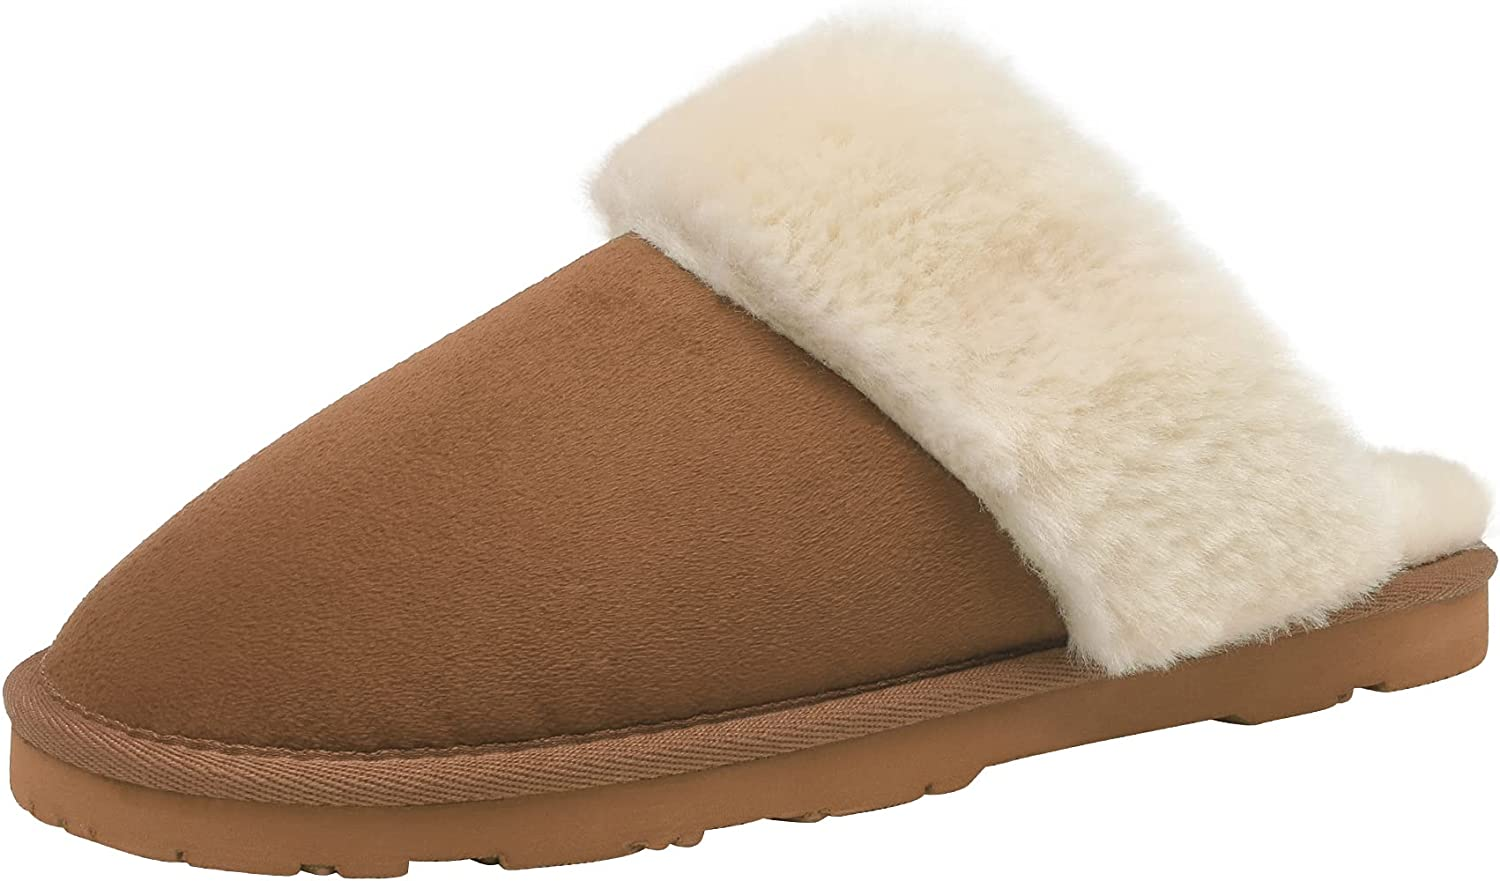 DREAM PAIRS Women's Sheepskin Slip House Mail order cheap On Slippers Indoor Outd Import